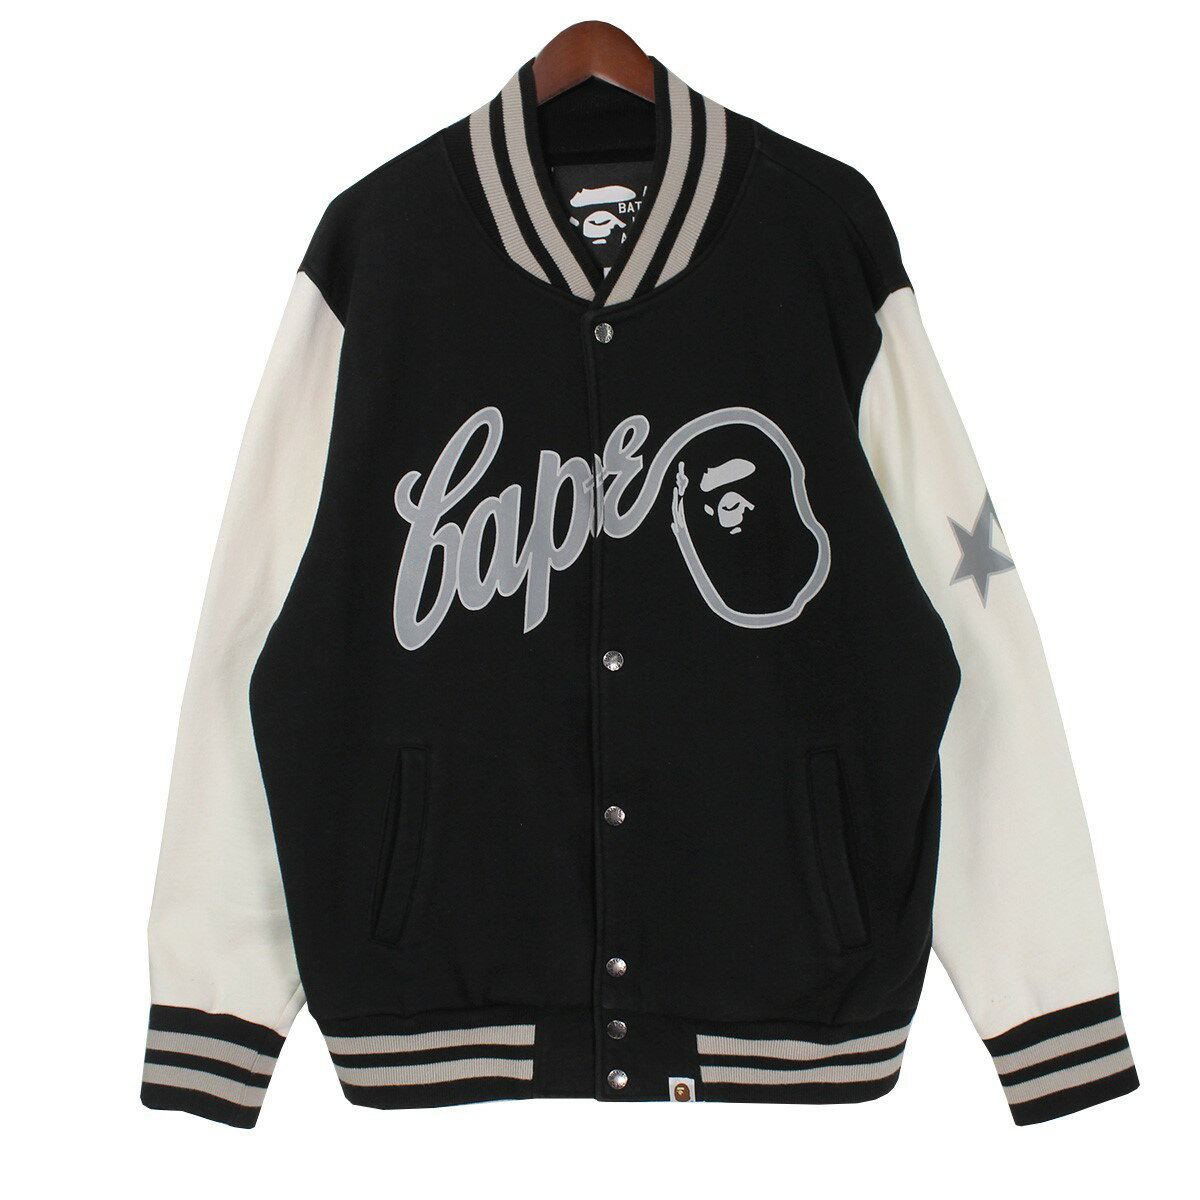 A Bathing Ape varsity jacket A BATHING APE M 330